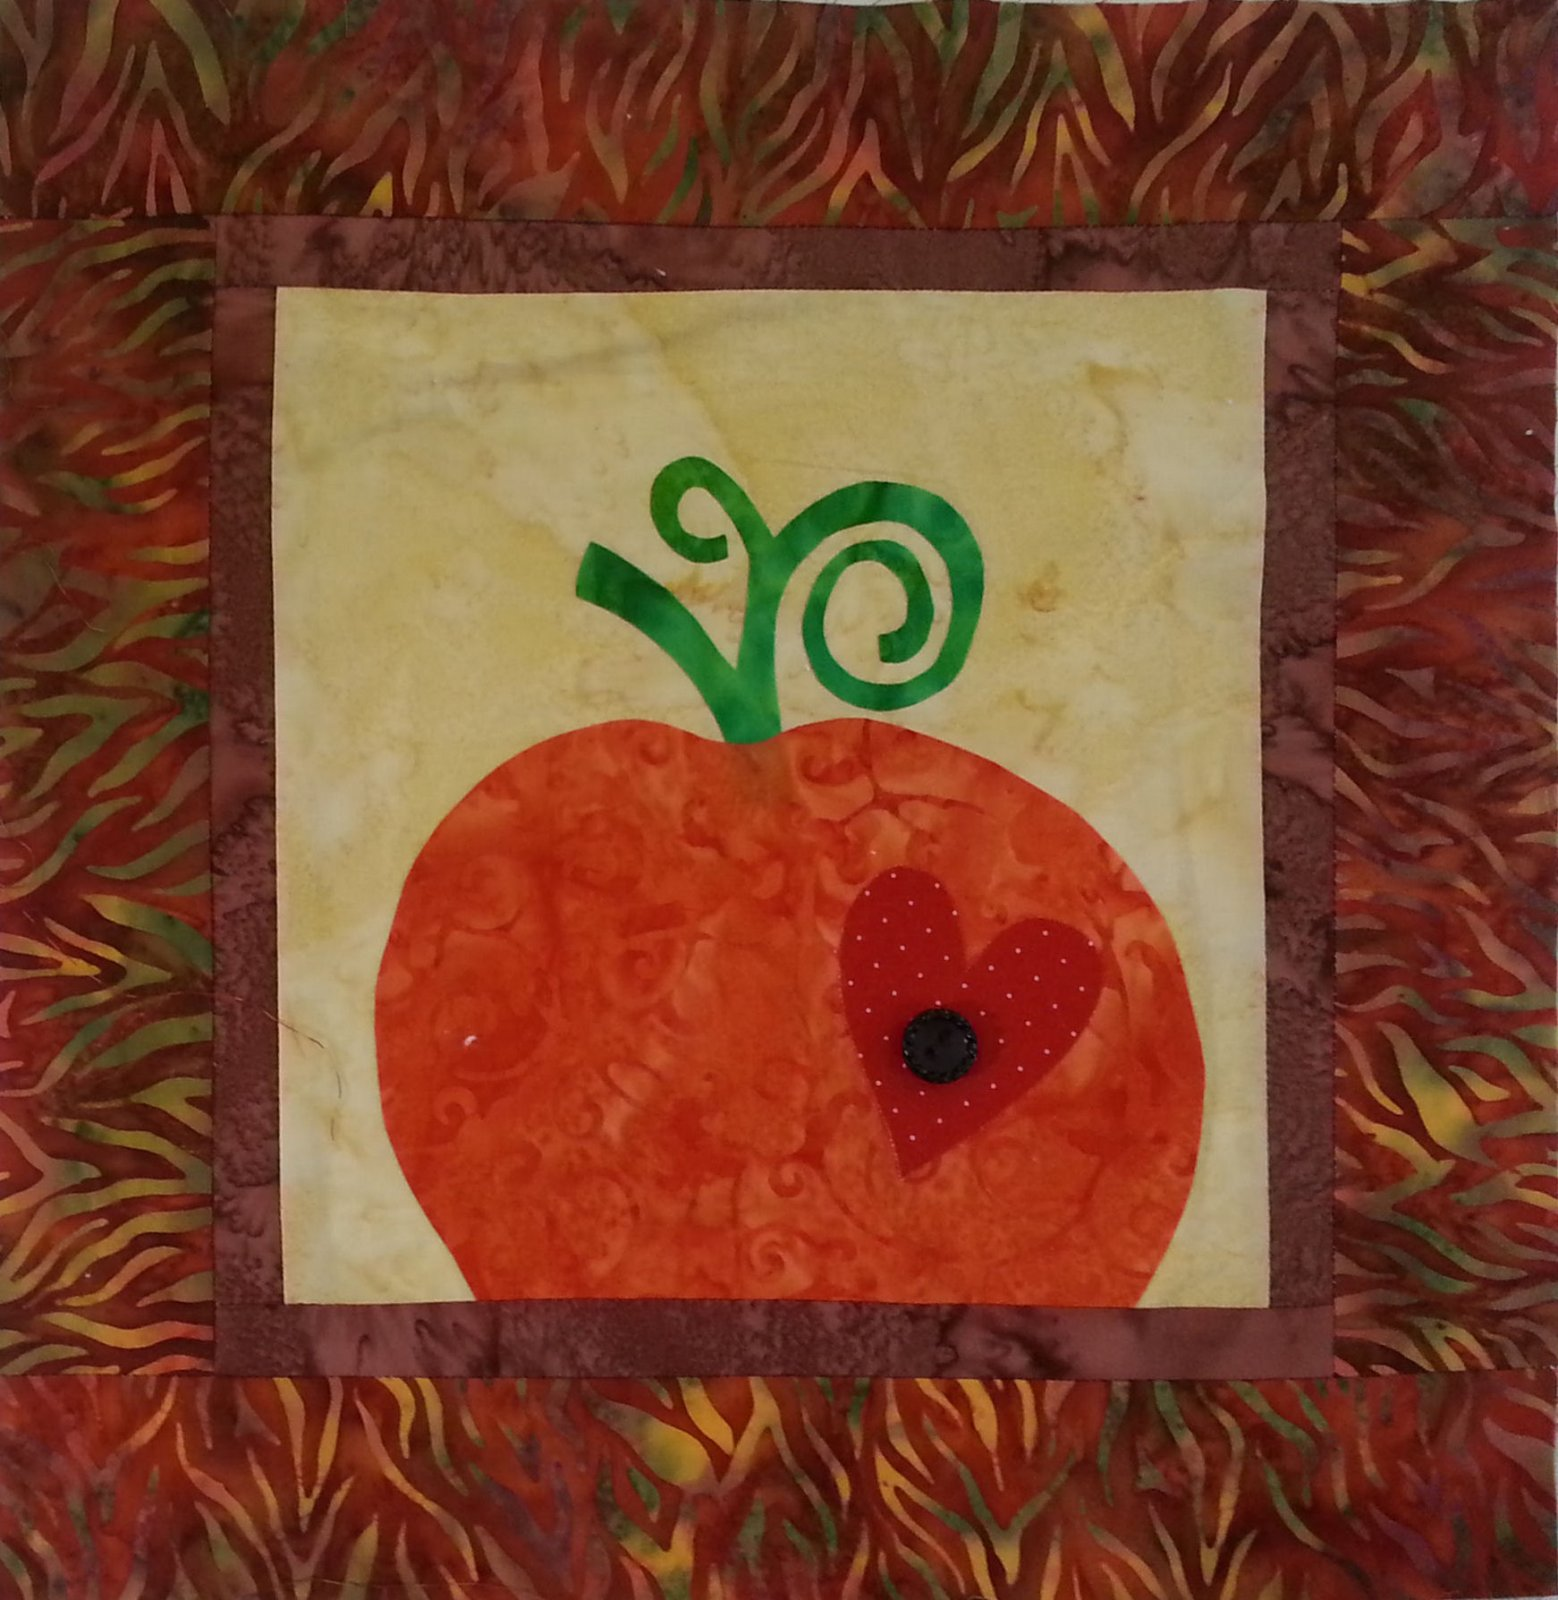 The Pumpkin Sample - 12 x 12